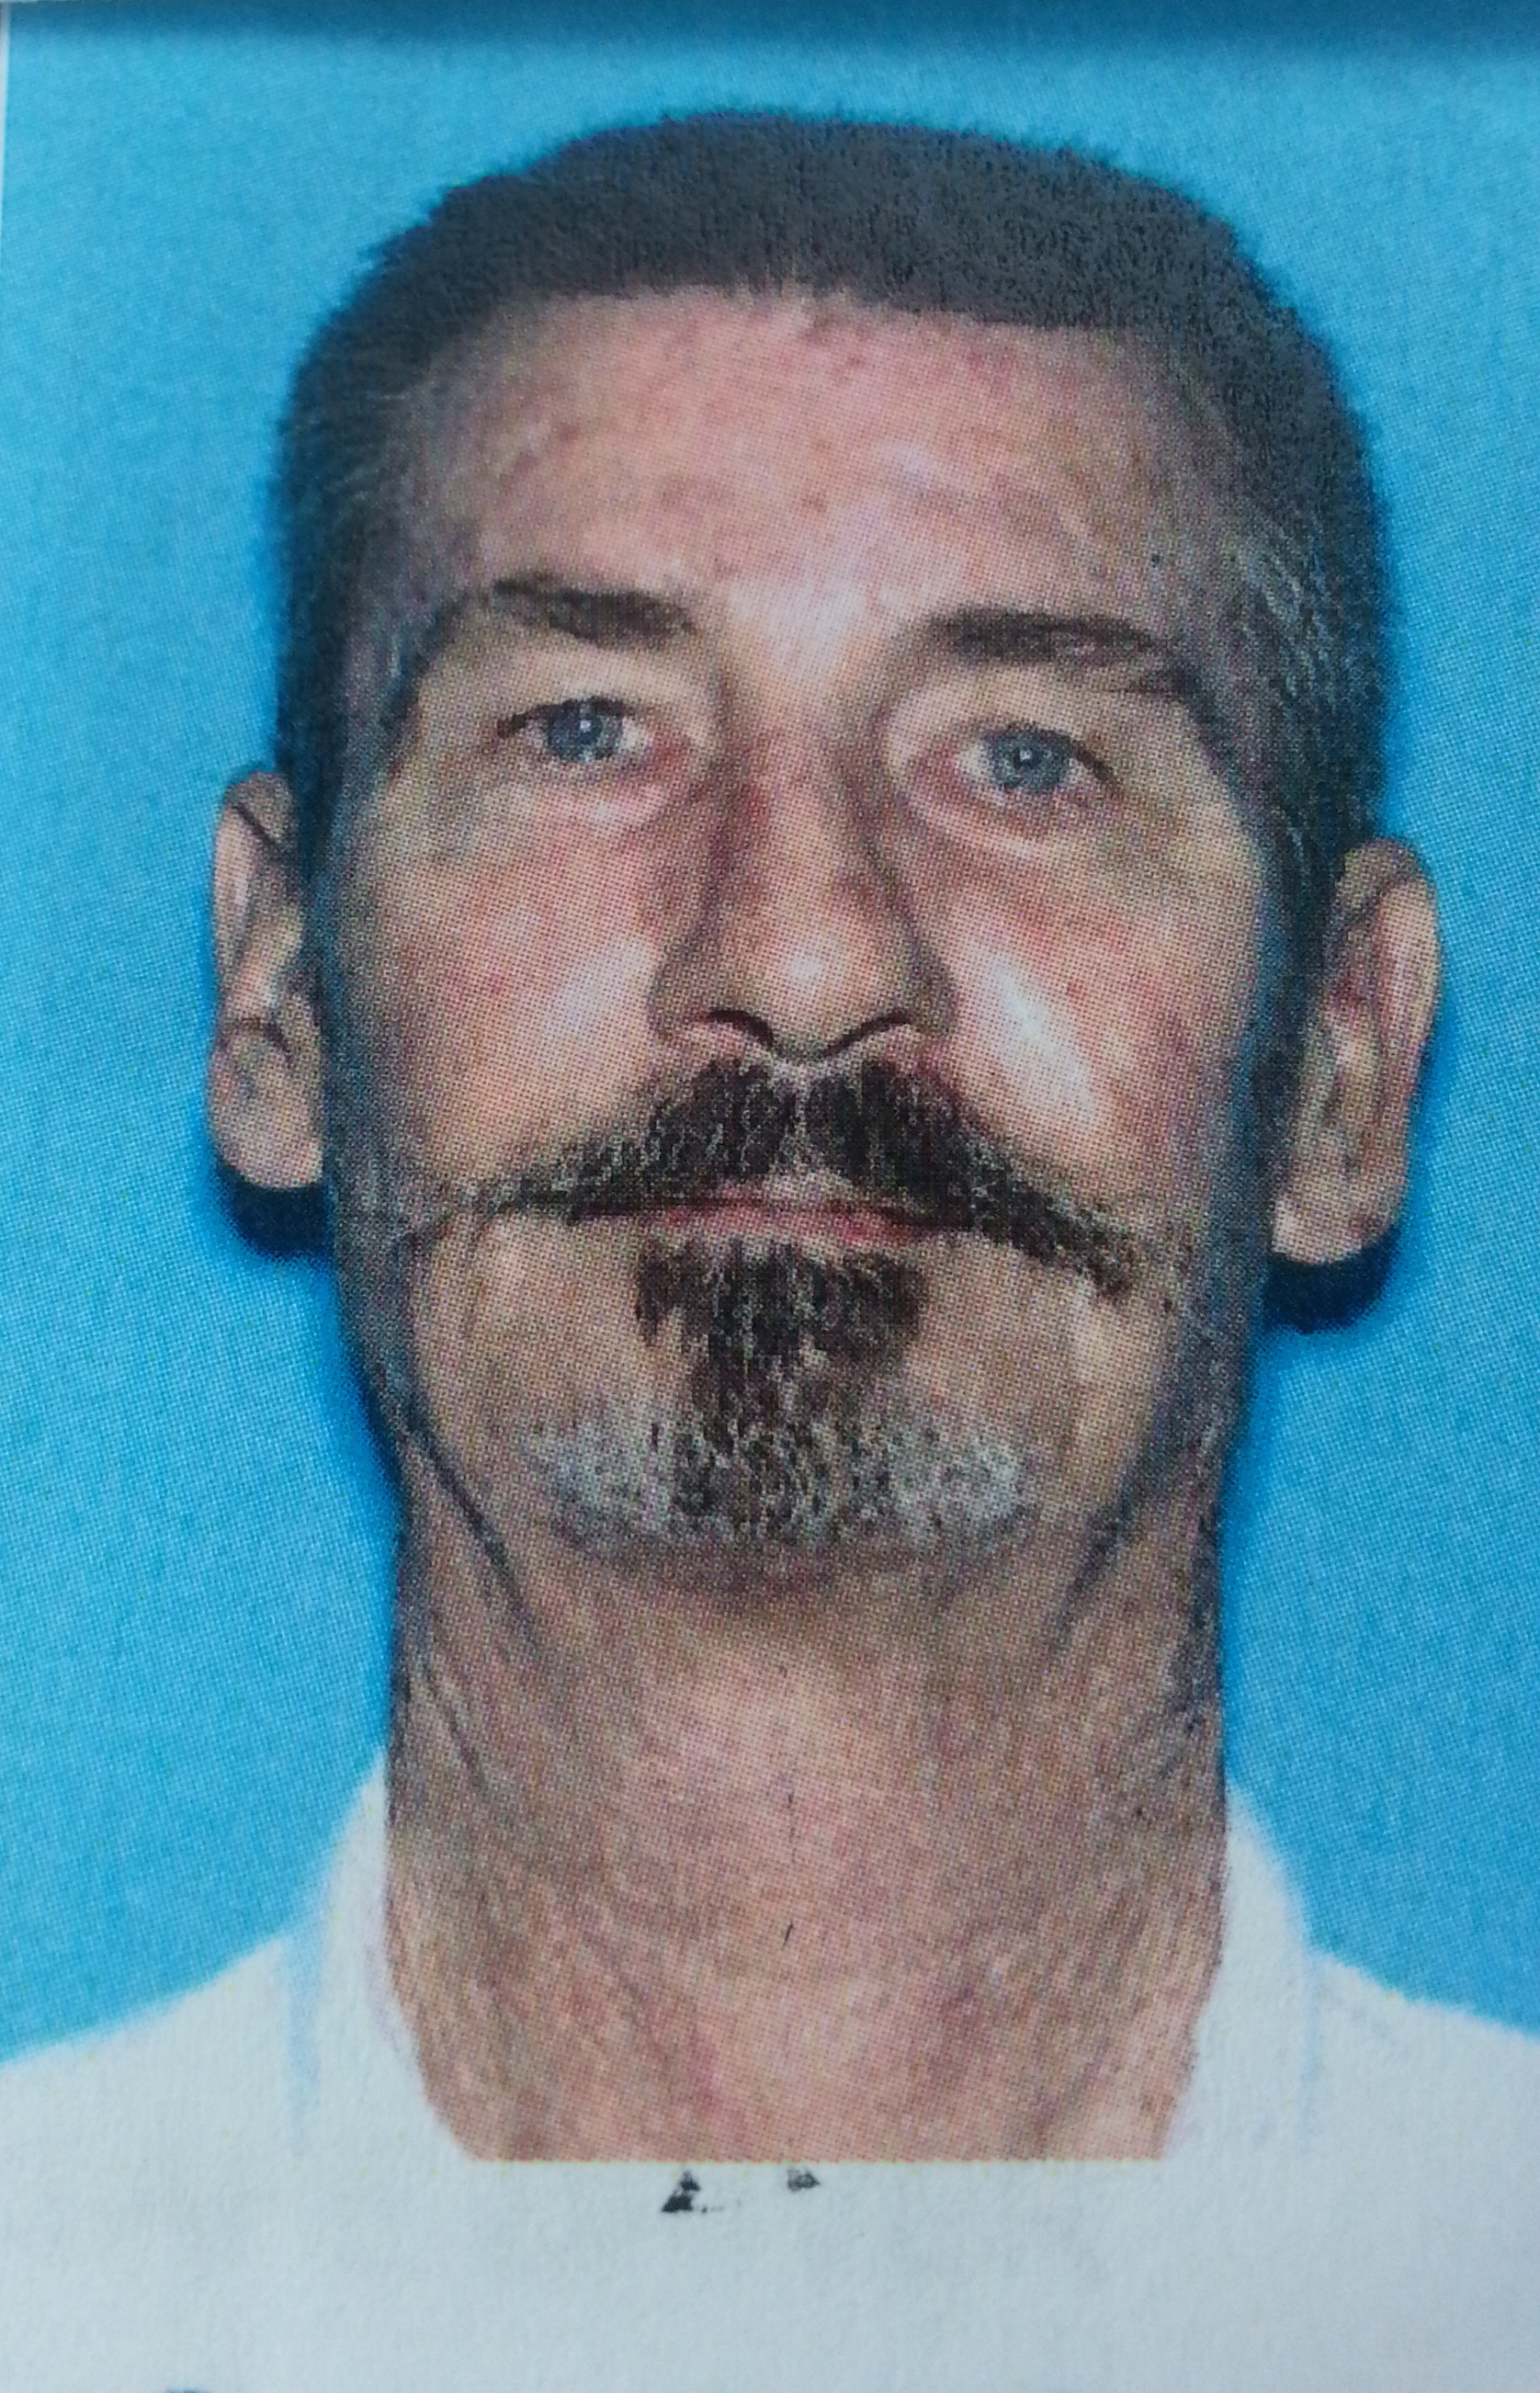 PHOTO: Missing endangered person, Brendan Eugene Love, has not been seen since 8:00 AM Saturday, August 16, 2014. (Photo Courtesy of Cape Coral Police Department)